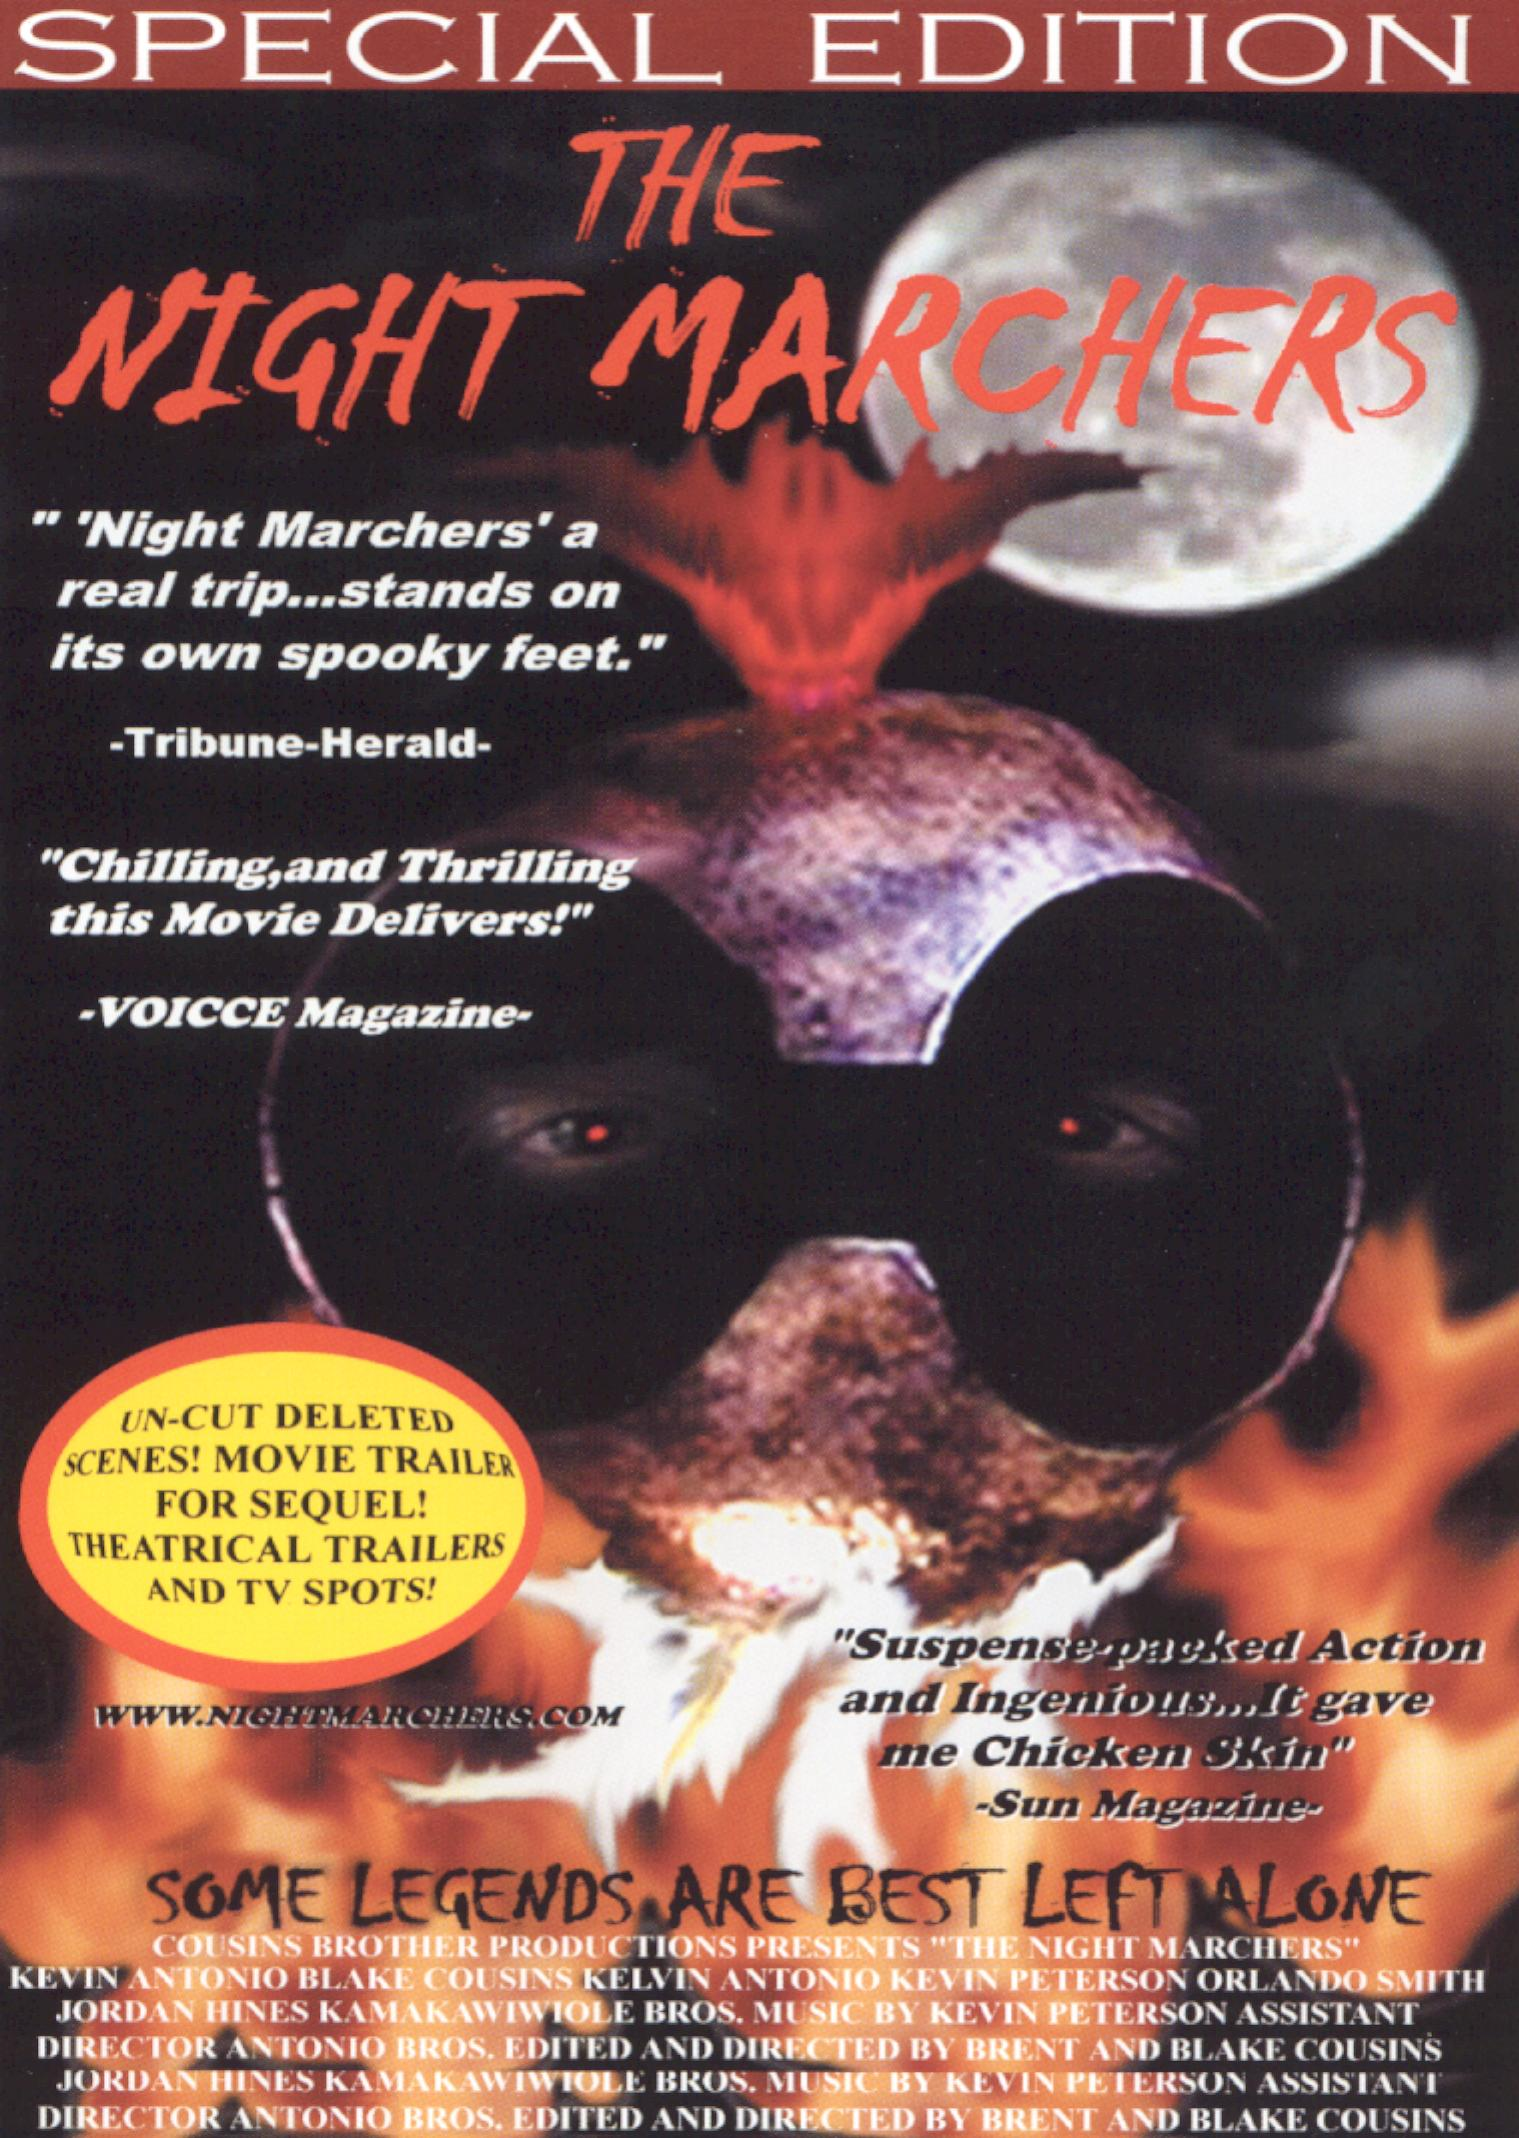 The Night Marchers